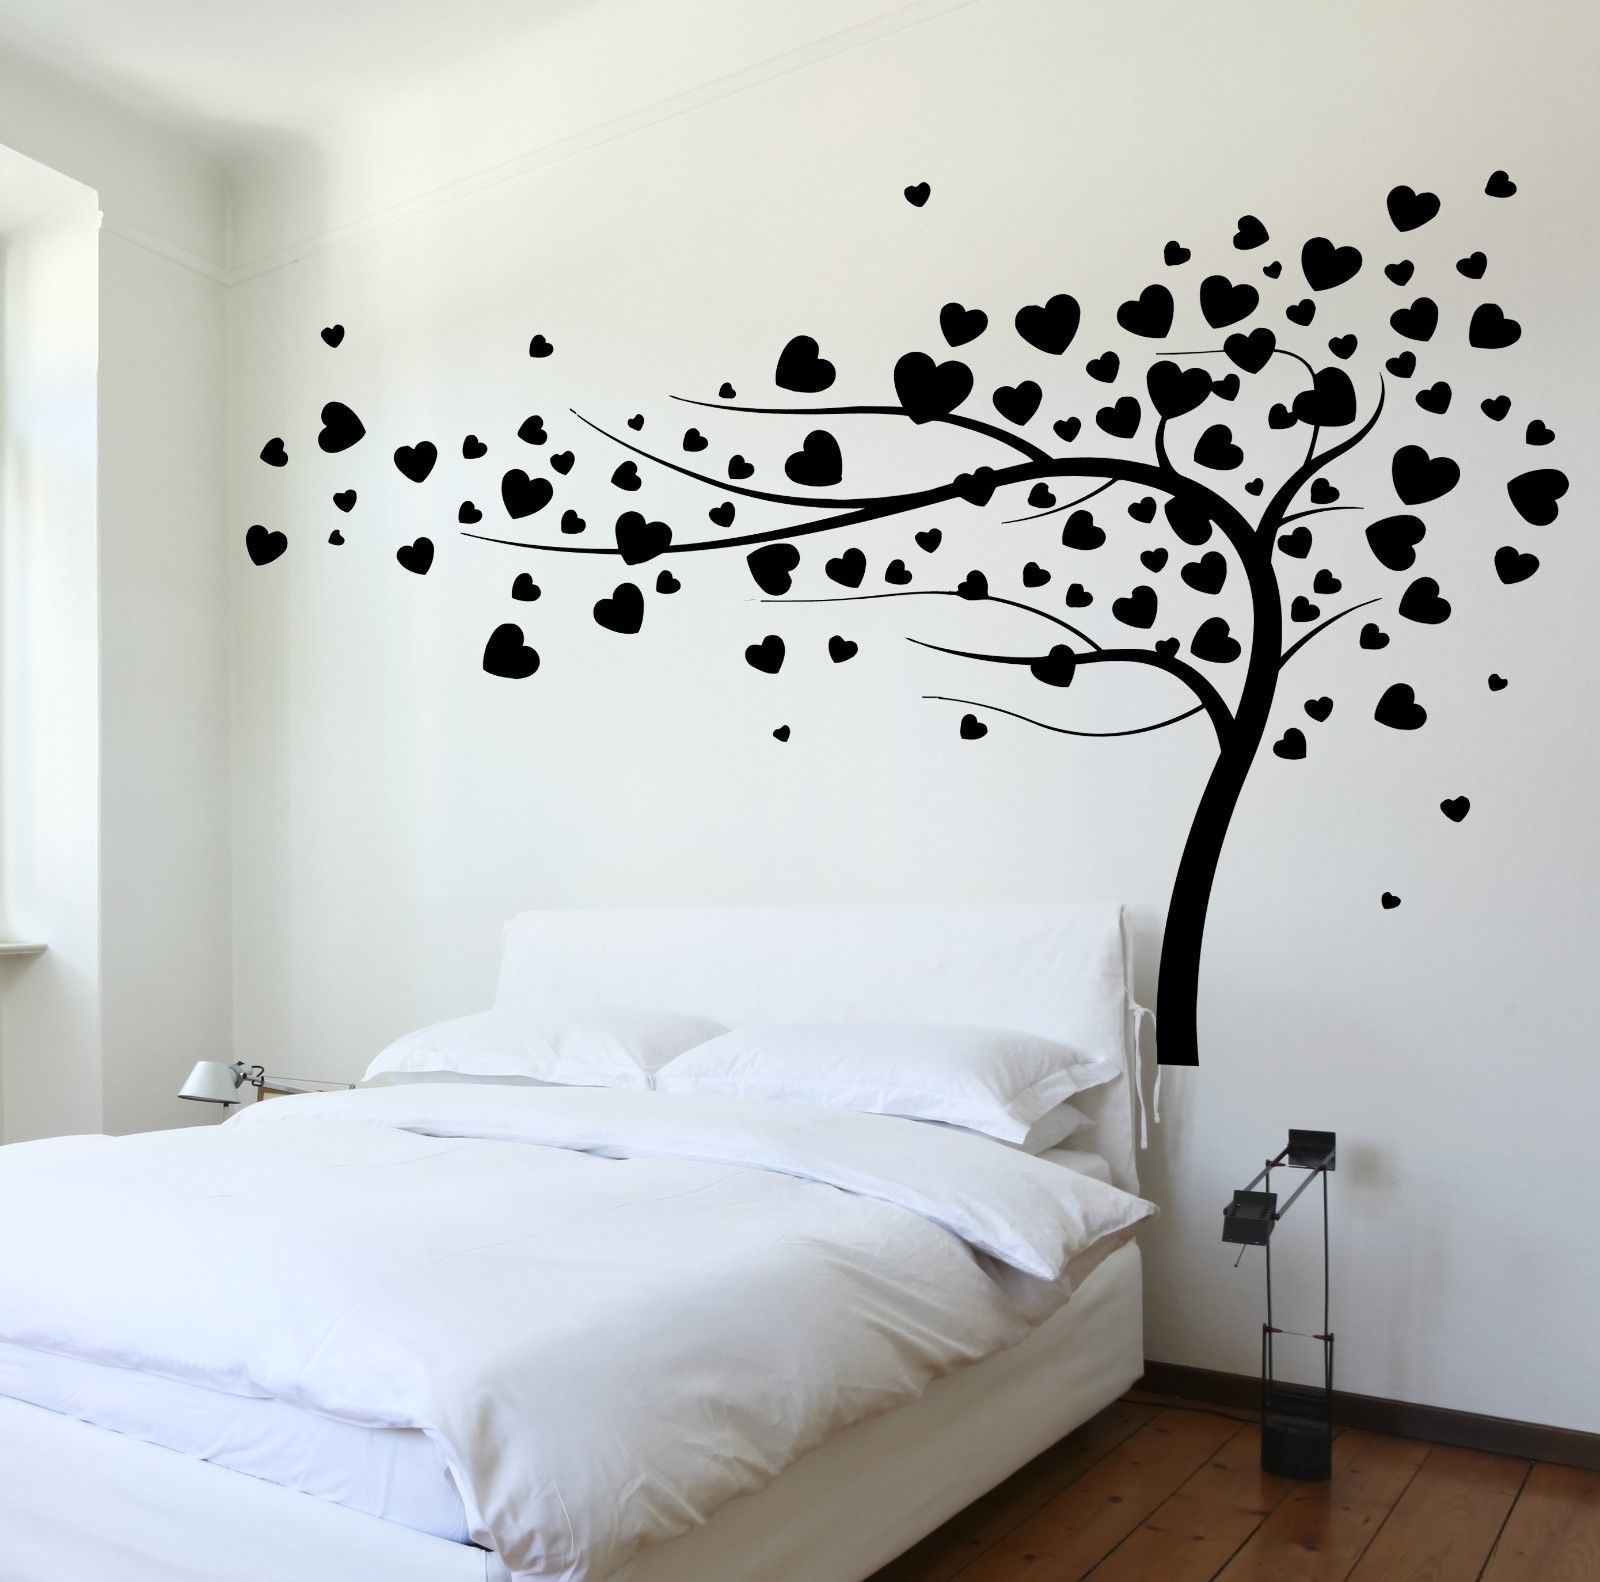 details about wall decal tree branch hearts leafs for on wall stickers for bedroom id=11552